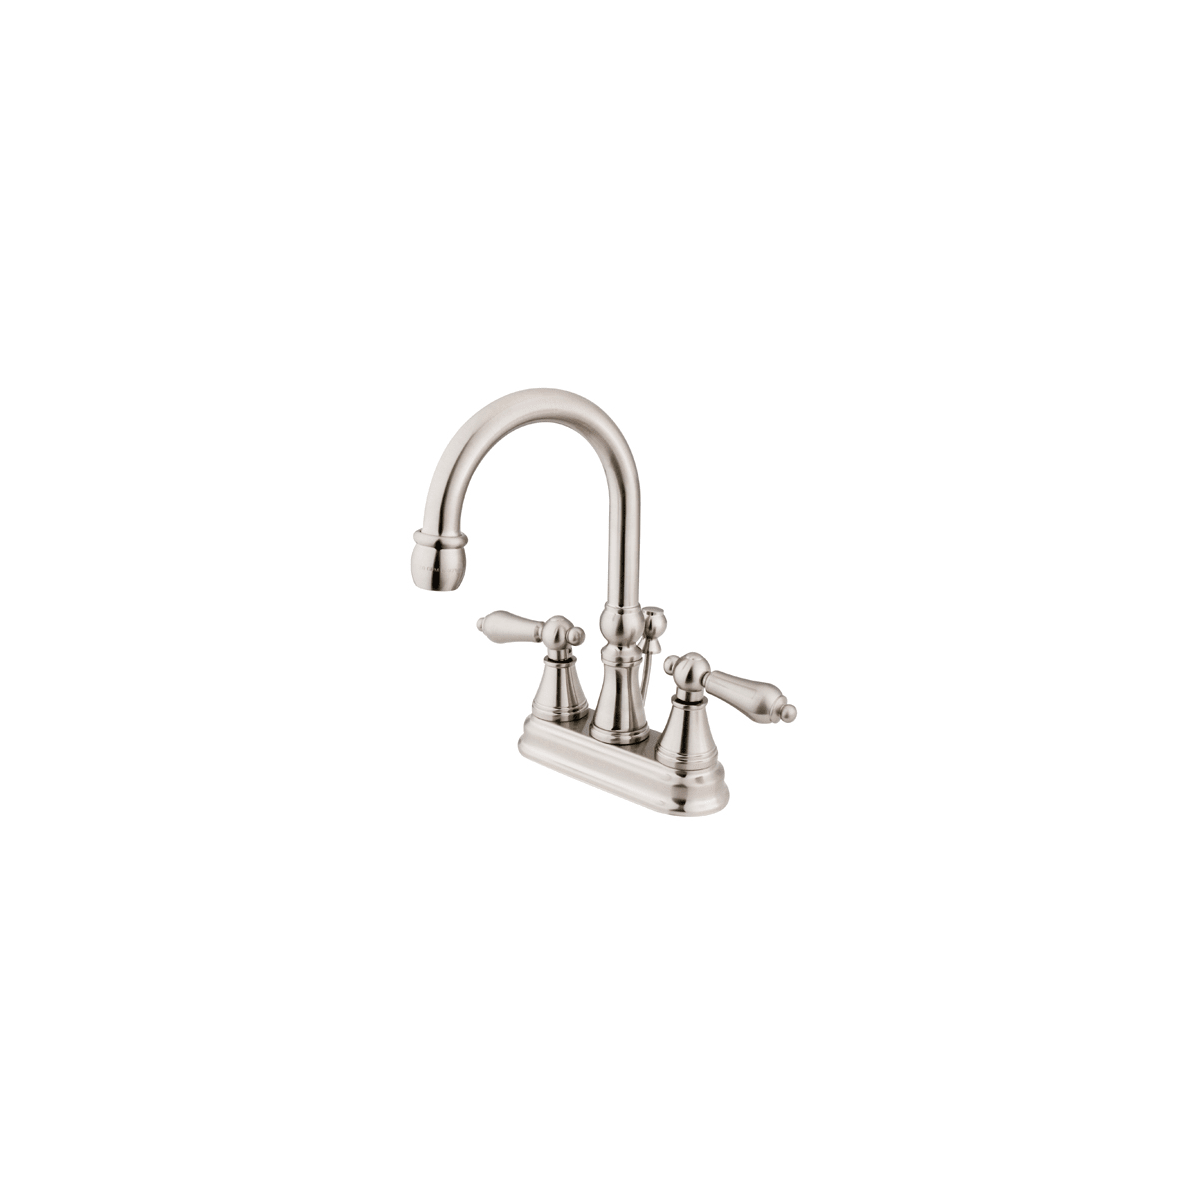 Kingston Brass Ks2618al Satin Nickel Governor Centerset Bathroom Faucet With Brass Pop Up Drain Assembly And Metal Lever Handles